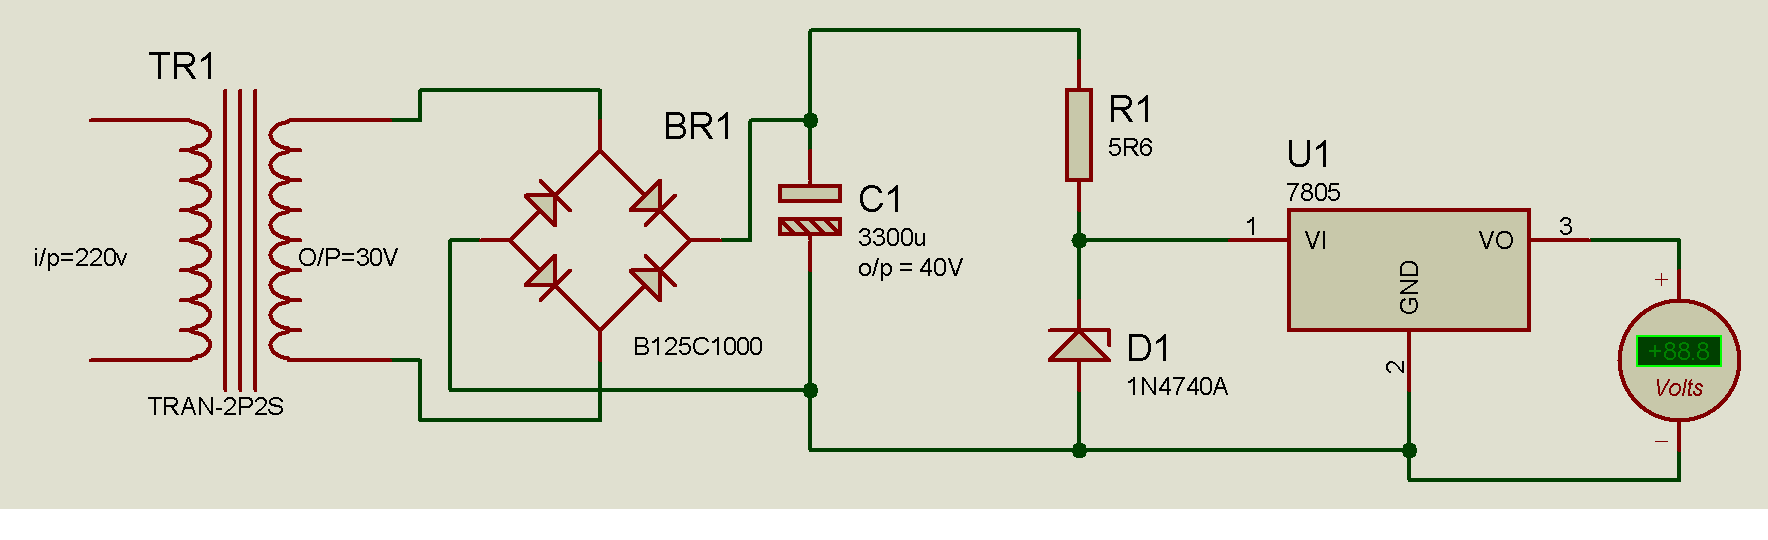 When Connected The Voltage Divider Network To 7805 Opamp Circuit Output Electronics And Electrical Quizzes Eeweb 2 1331041547